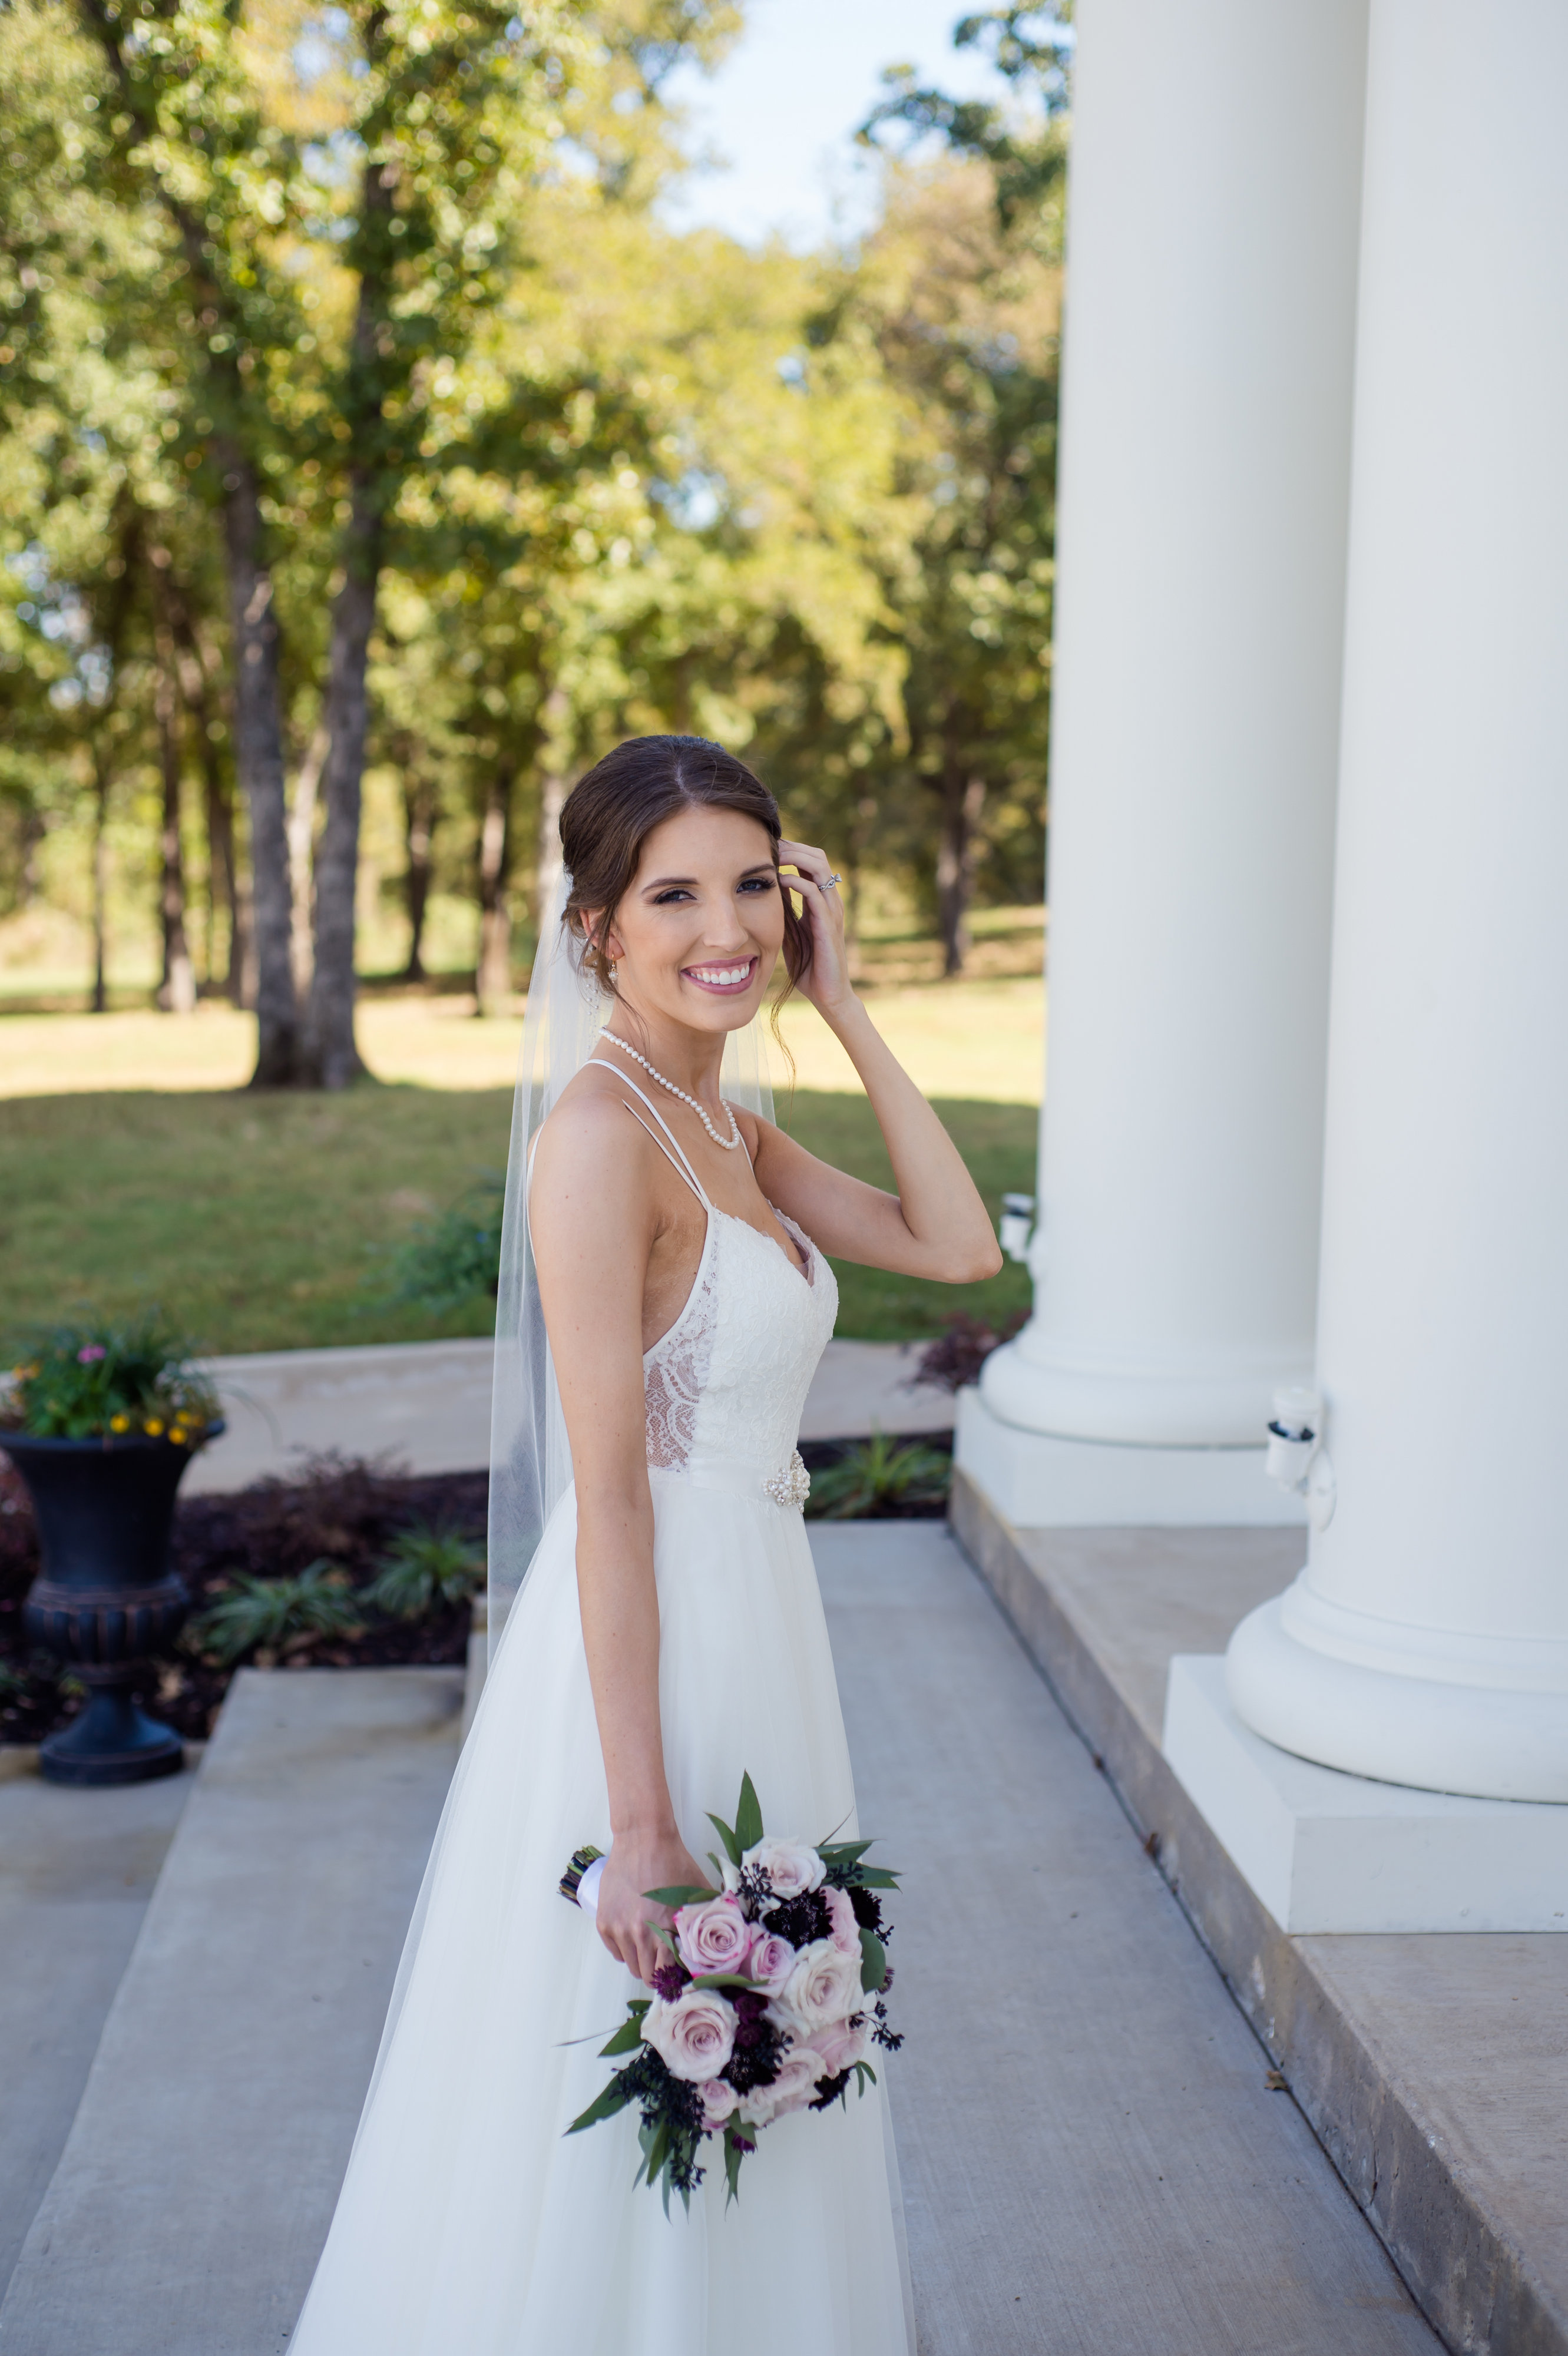 Brittany Barclay Photography